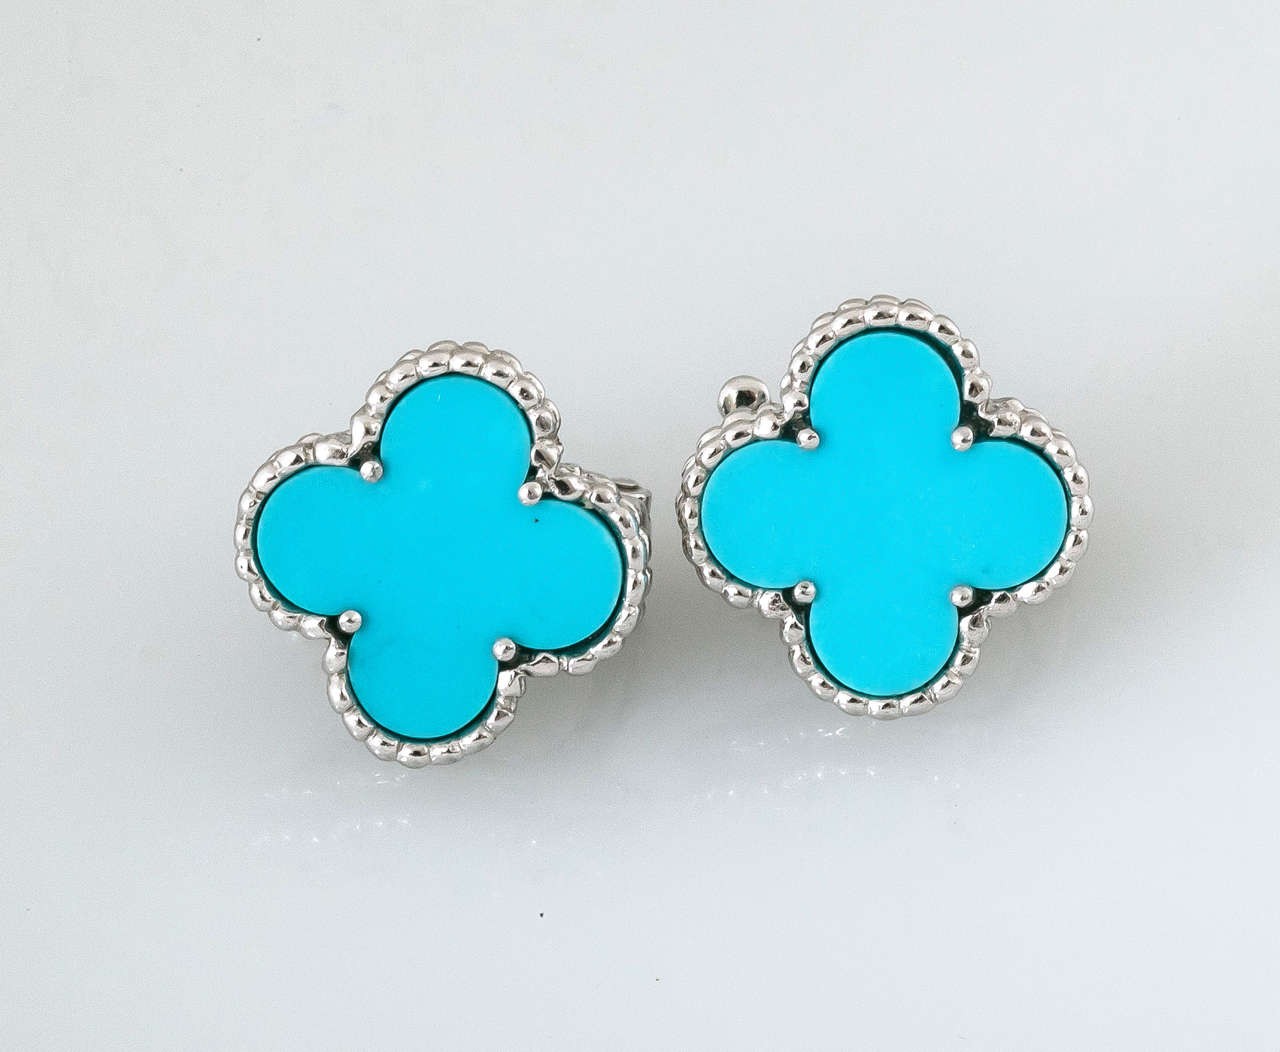 drop veined jewelry in lg categories earrings turquoise bronze default scott elle kendra